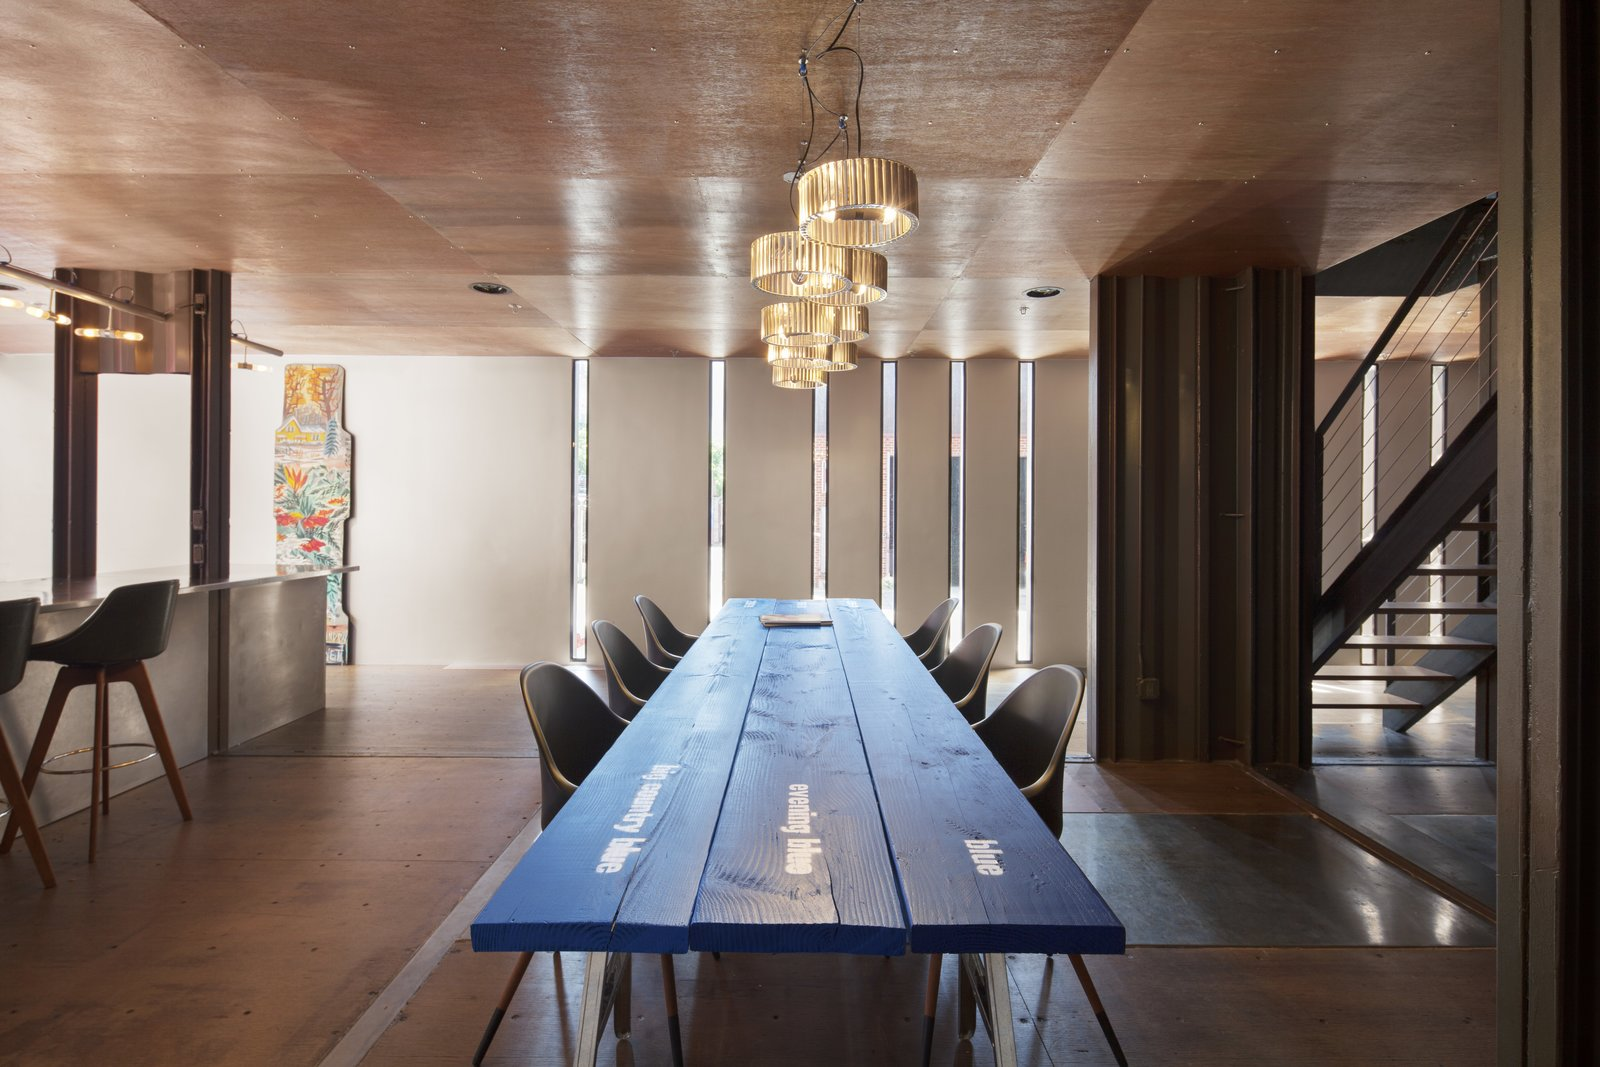 Dining Room, Medium Hardwood Floor, Pendant Lighting, Chair, Table, Stools, and Bar  Photo 11 of 13 in An Amazing Home in Brooklyn Made Out of 21 Shipping Containers